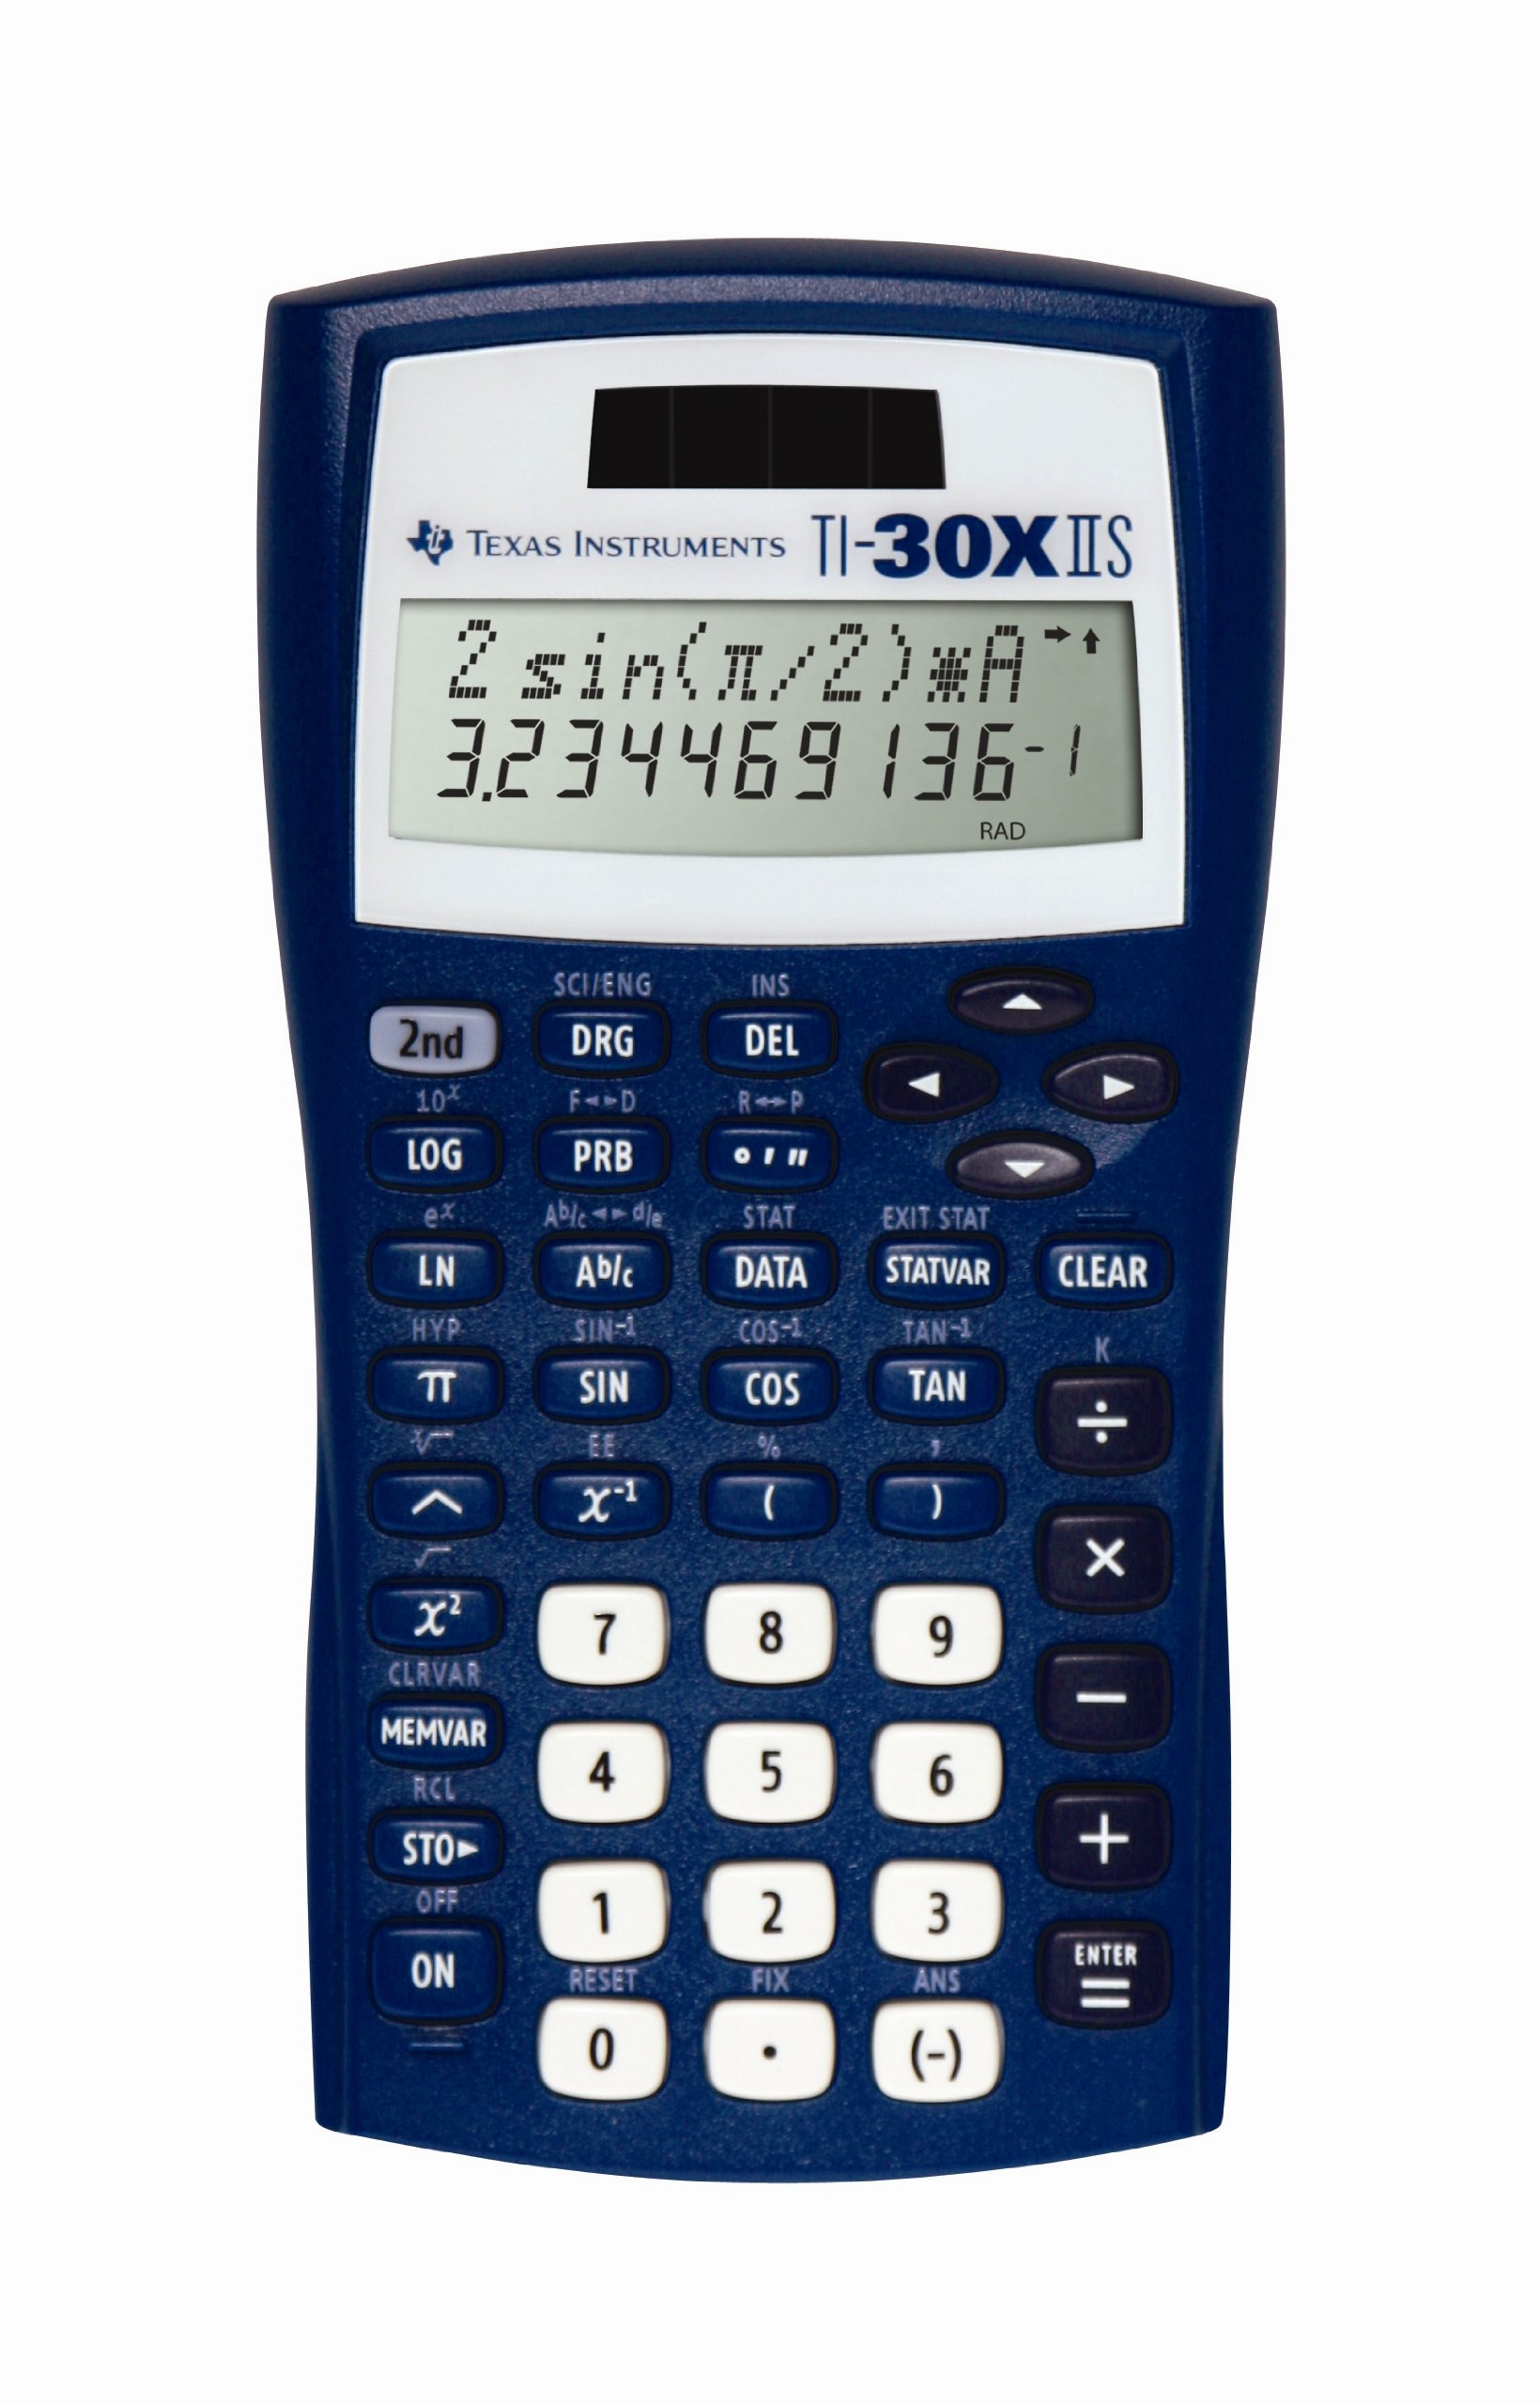 Texas Instruments TI-30X IIS 2-Line Scientific Calculator, Dark Blue by Texas Instruments